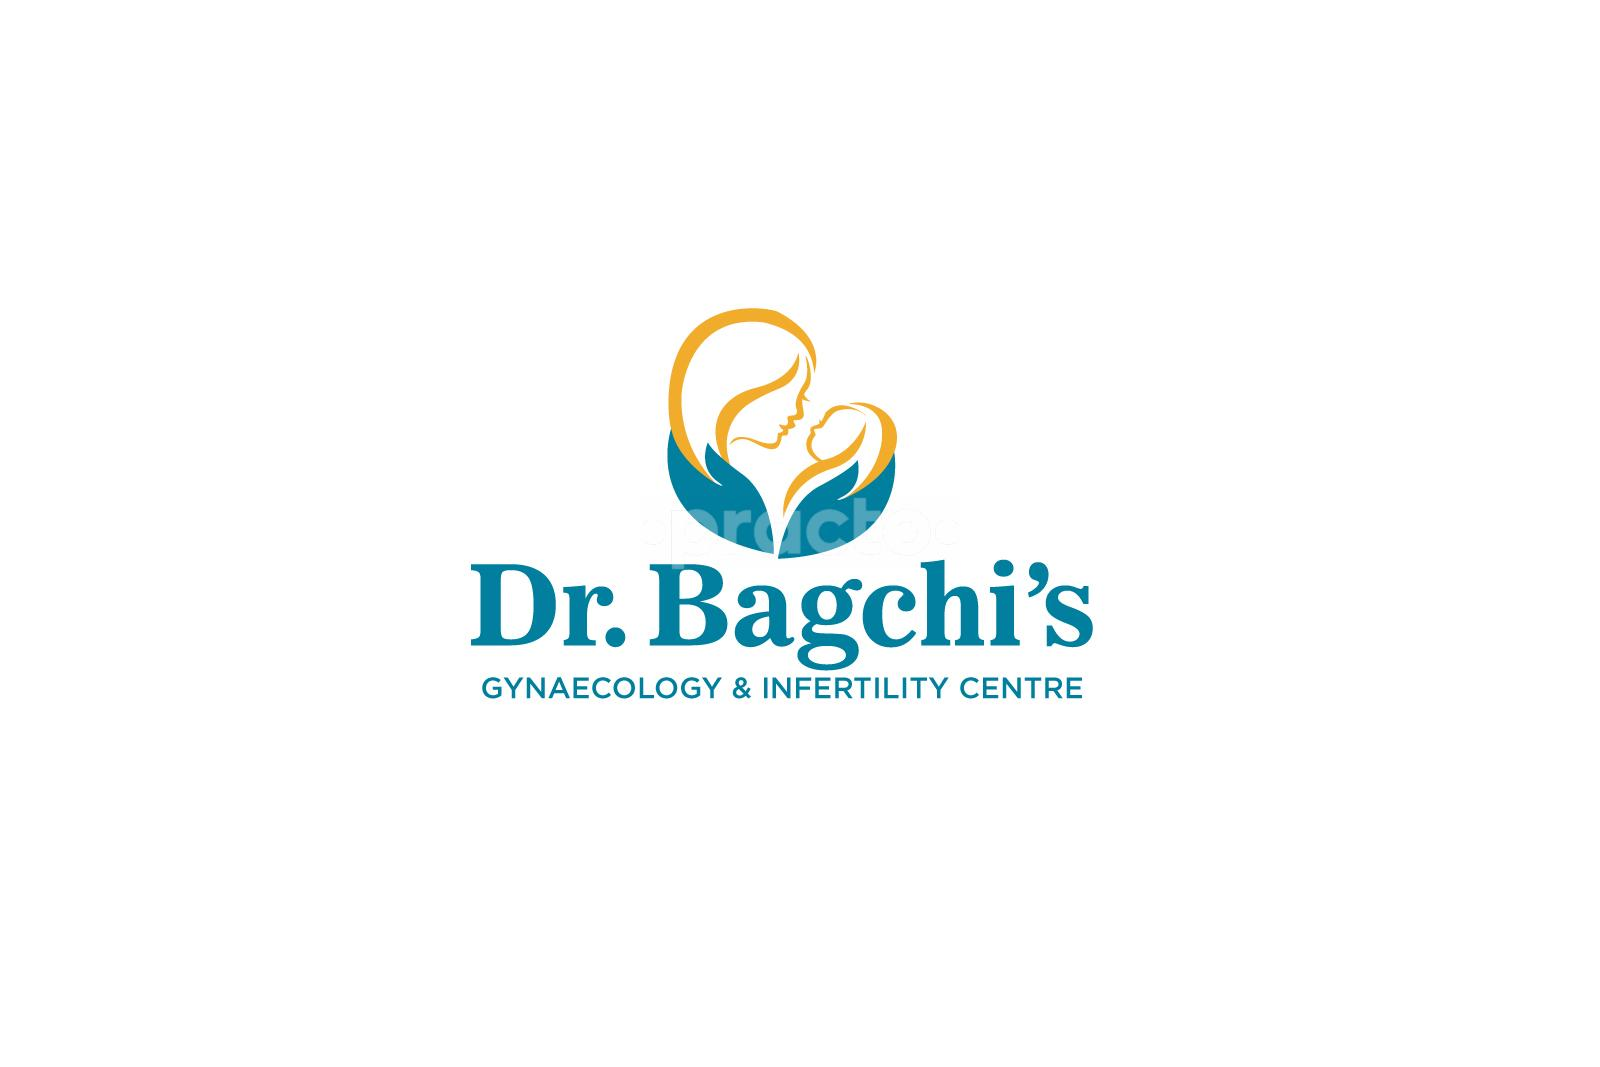 Dr. Bagchi Gynaecology and Infertility Centre